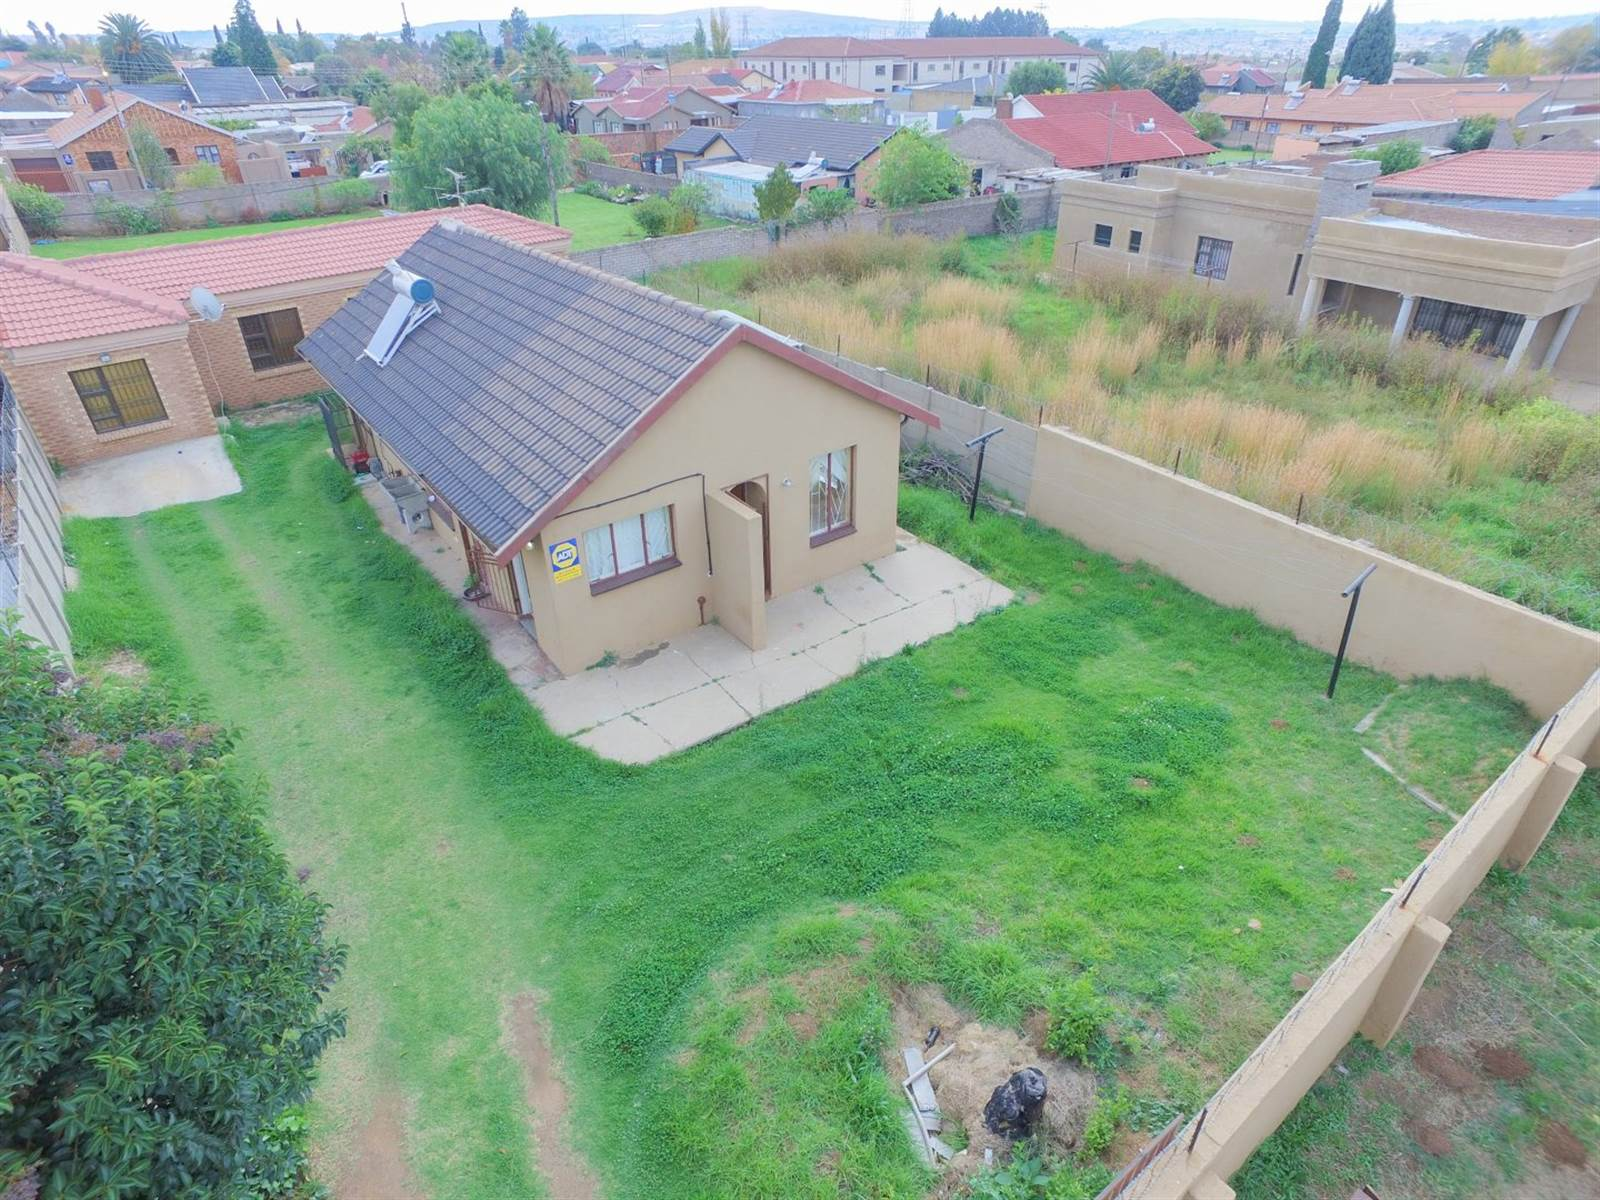 6 bed house in ennerdale